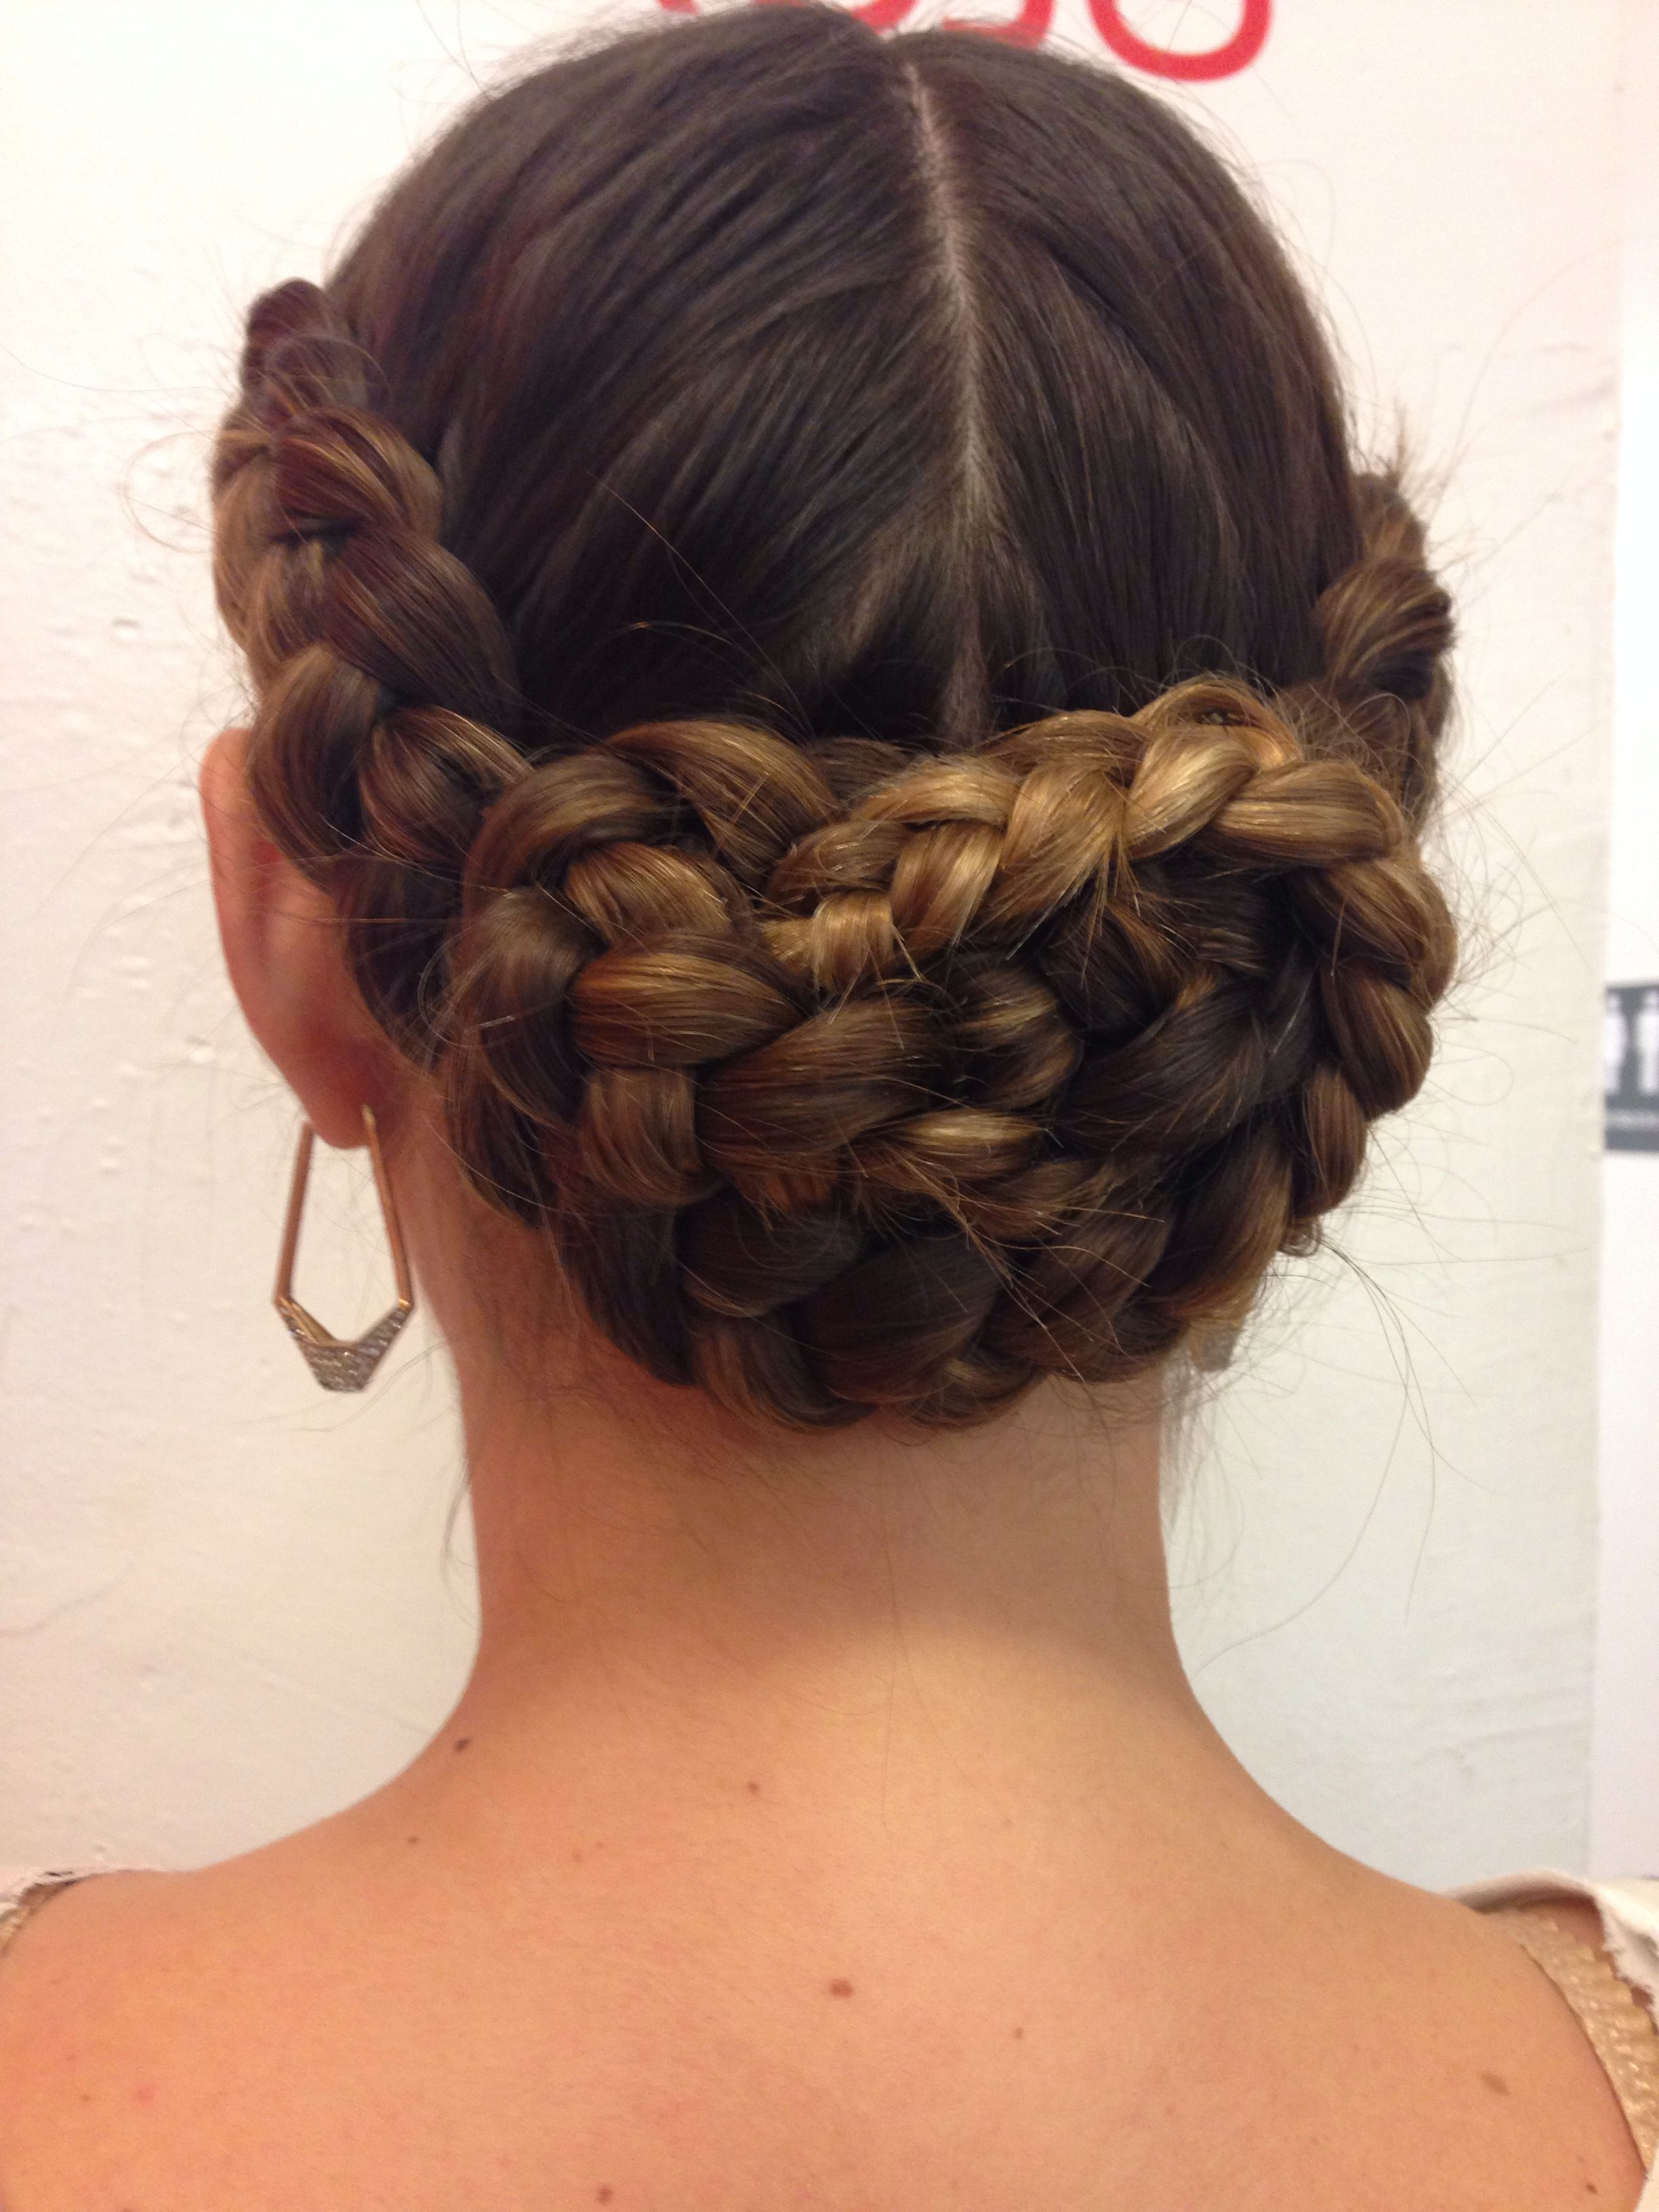 Pixie hairstyles for wedding low bun braid chic hairstyles and